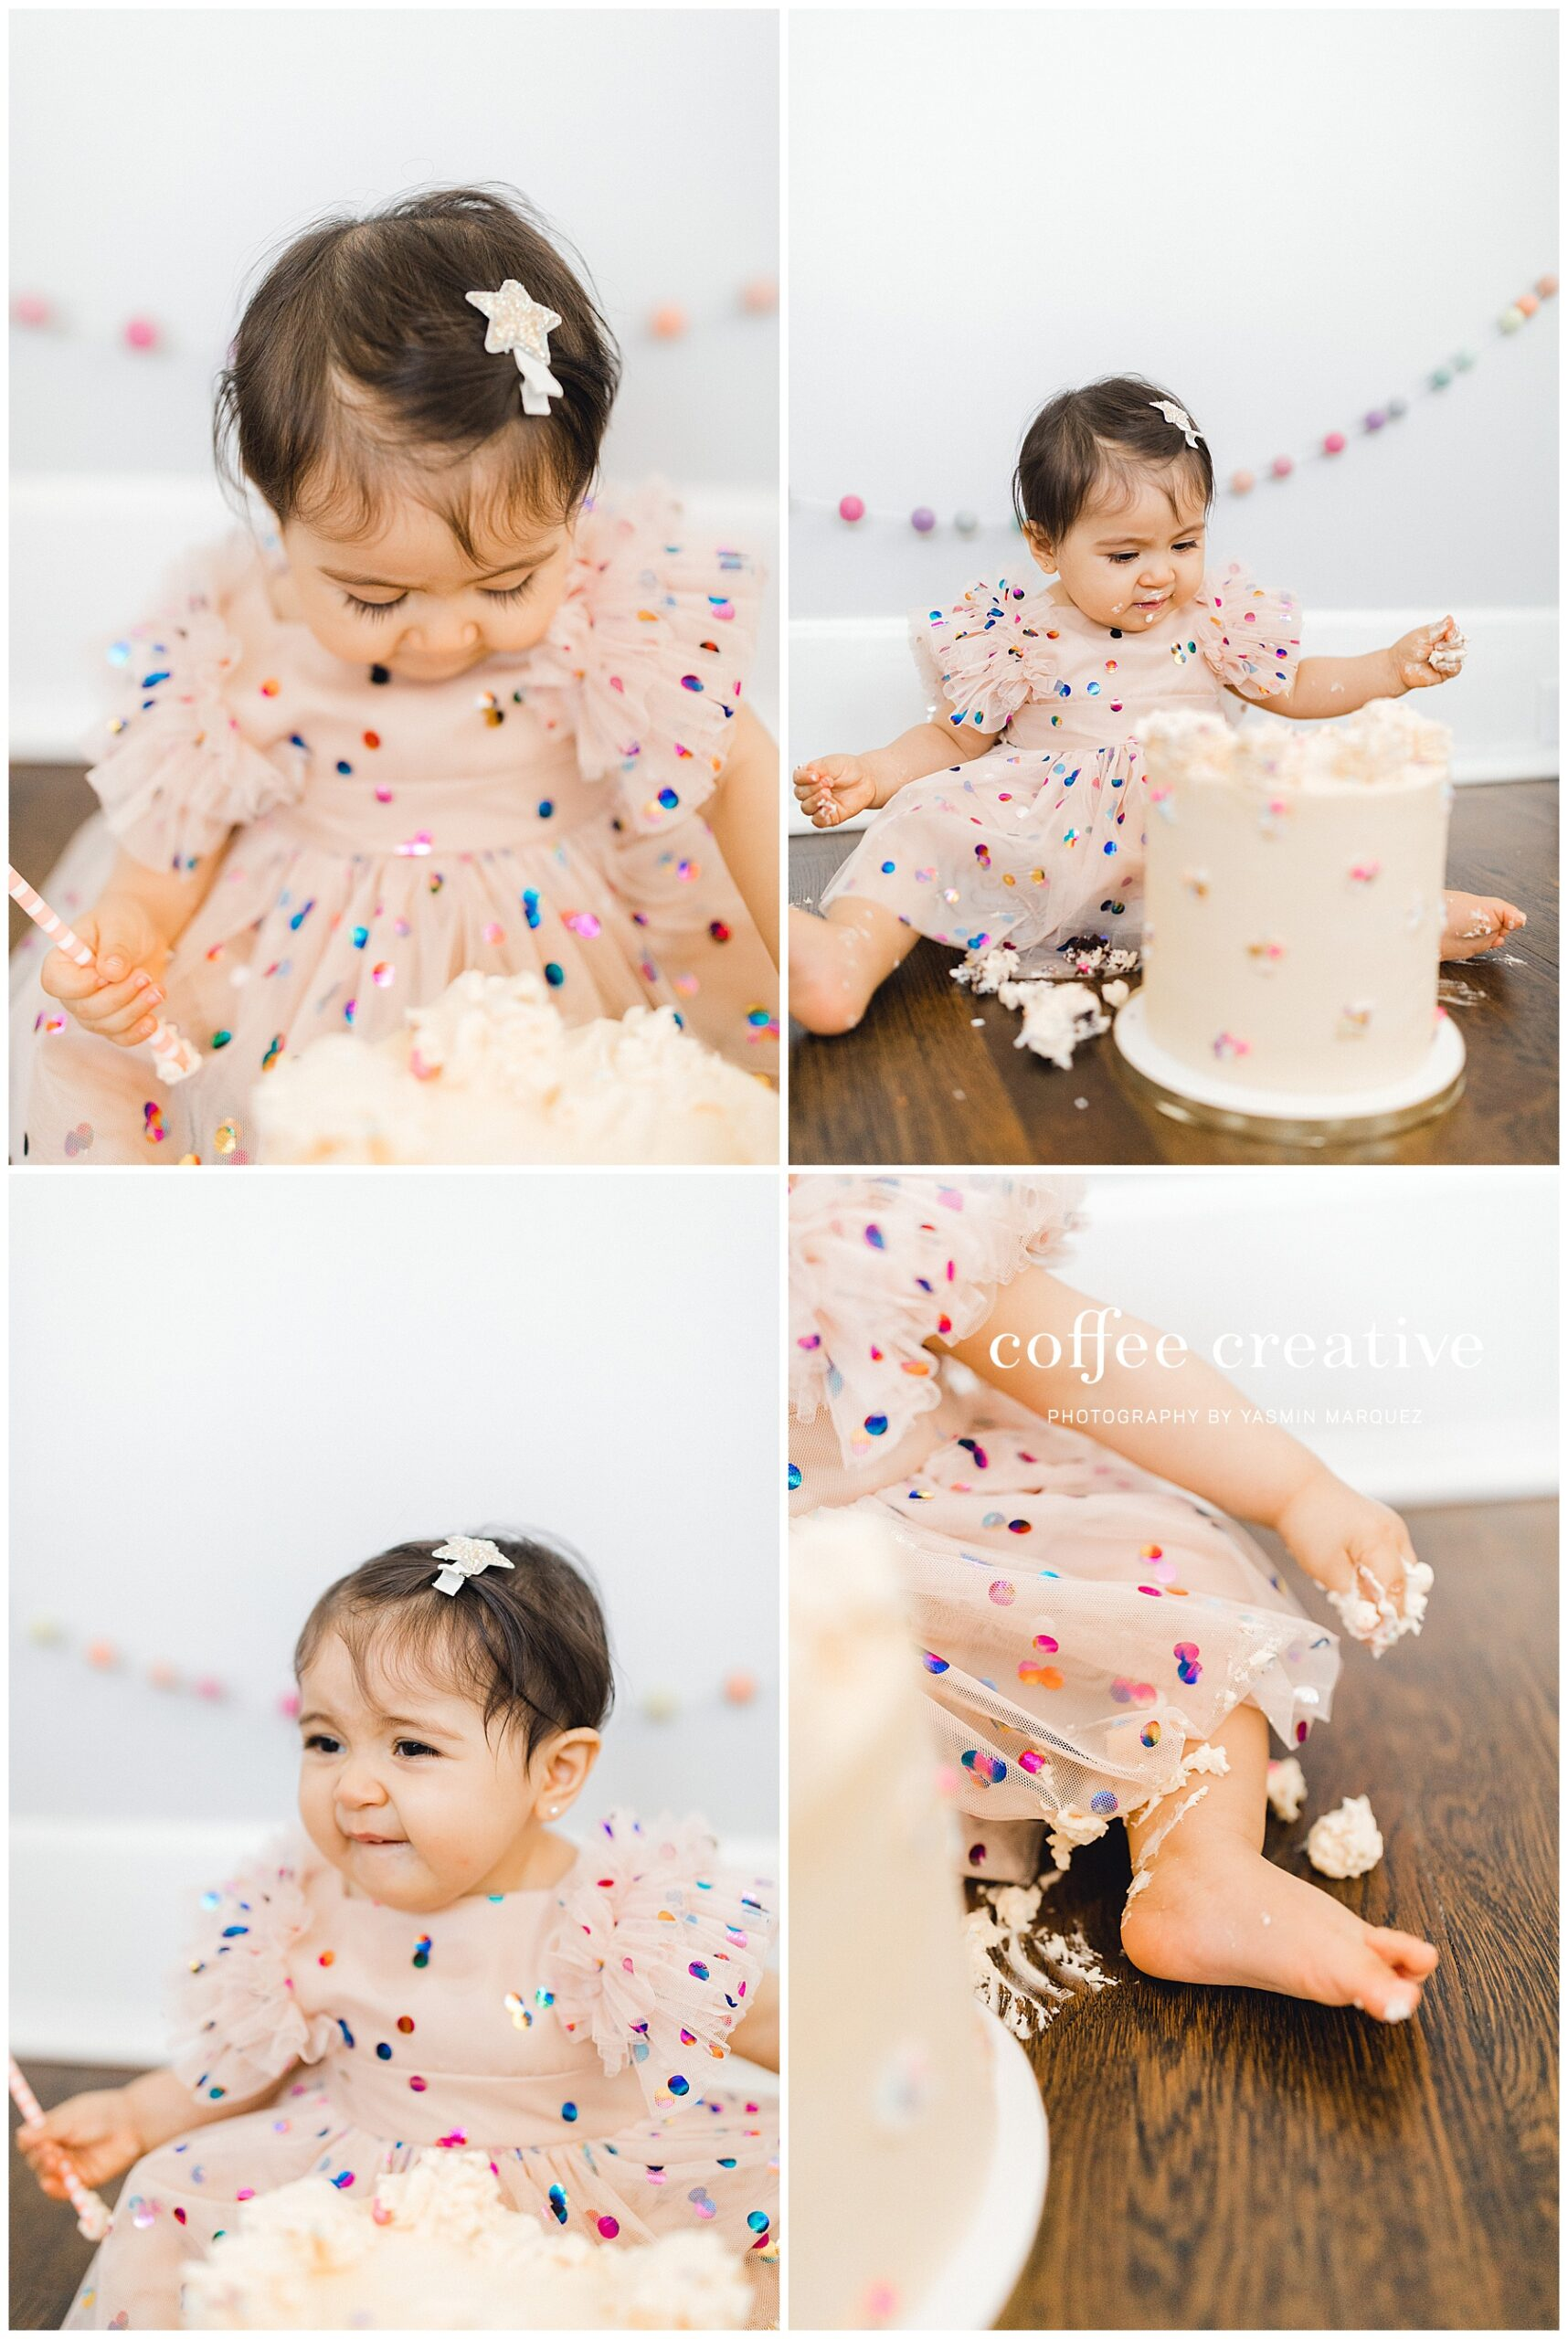 MODERN PASTEL SPRING CAKE SMASH, El paso photographer, el paso family photographer, el paso cake smash photographer, quarantine birthday party decor, inspired by this, 100 layer cakelet